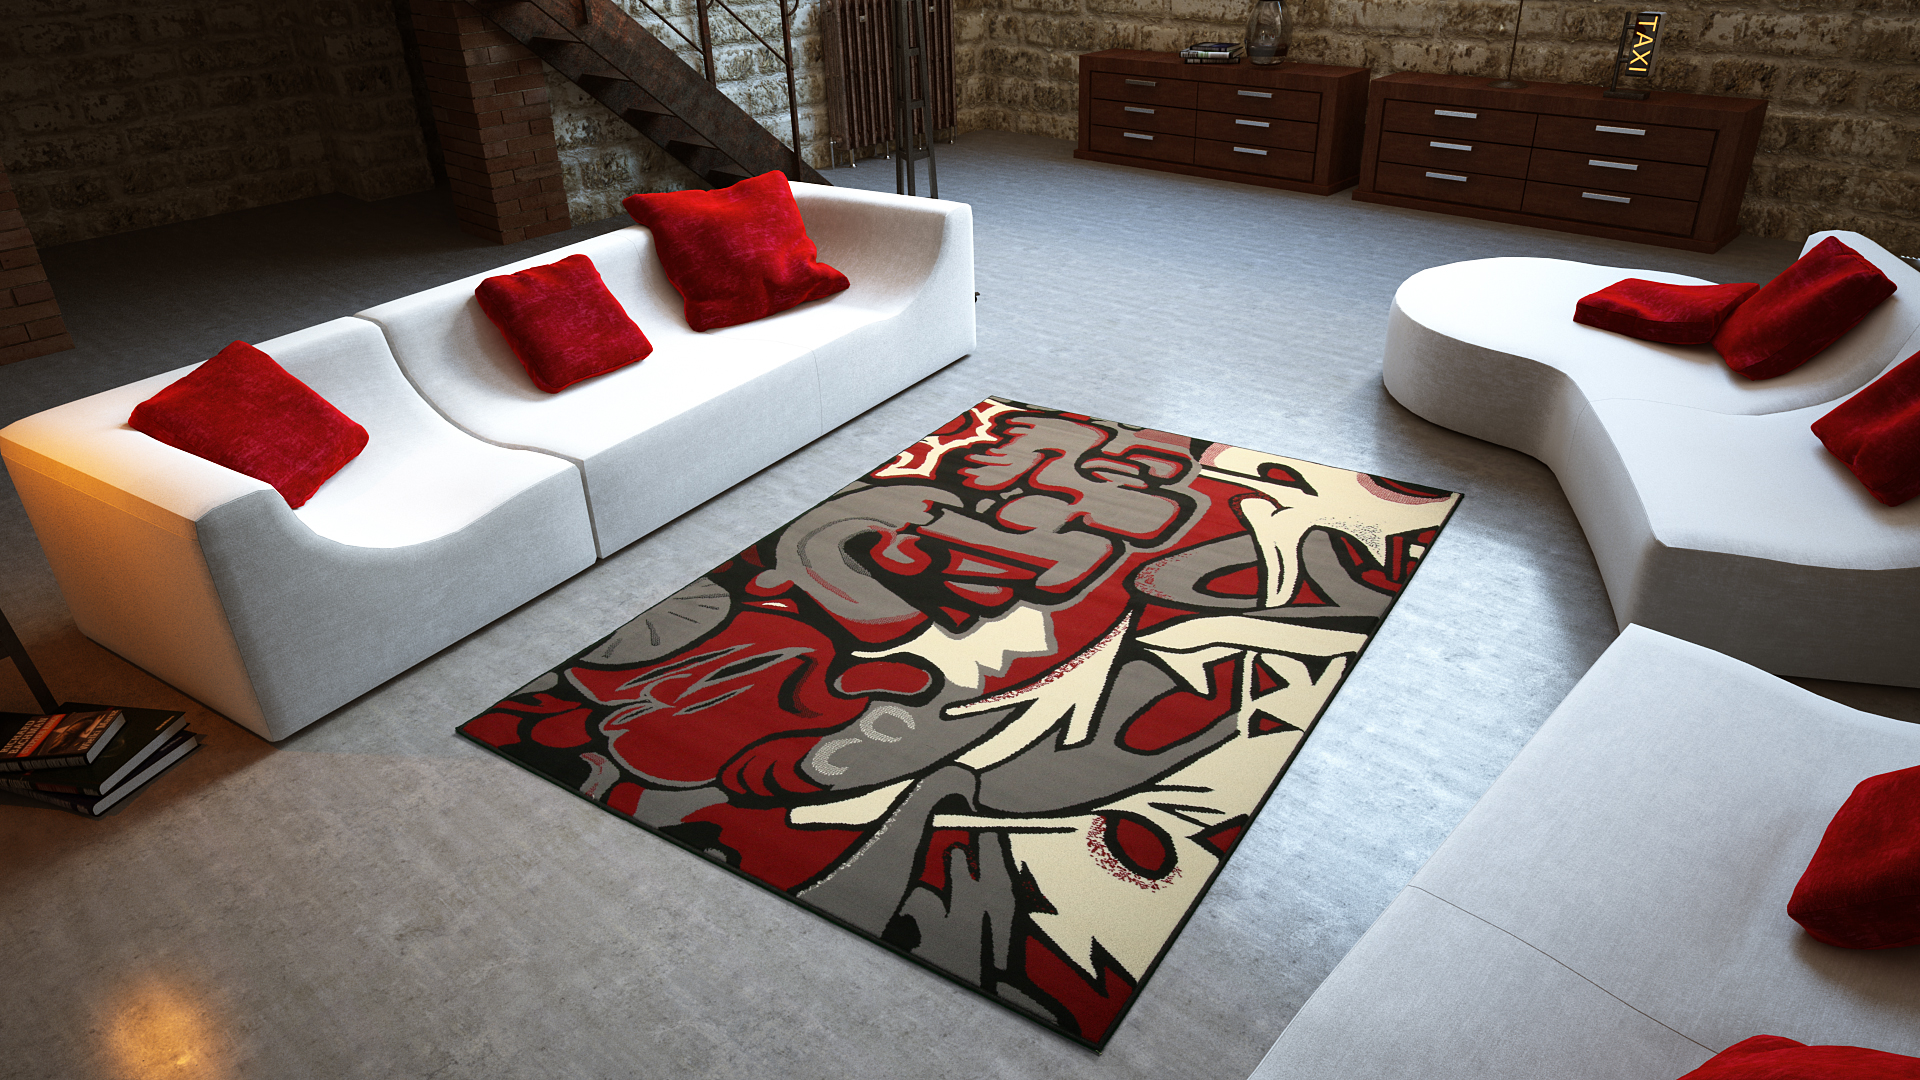 Universol tapis salon graffitis tags rouge - Tapis rouge de salon ...